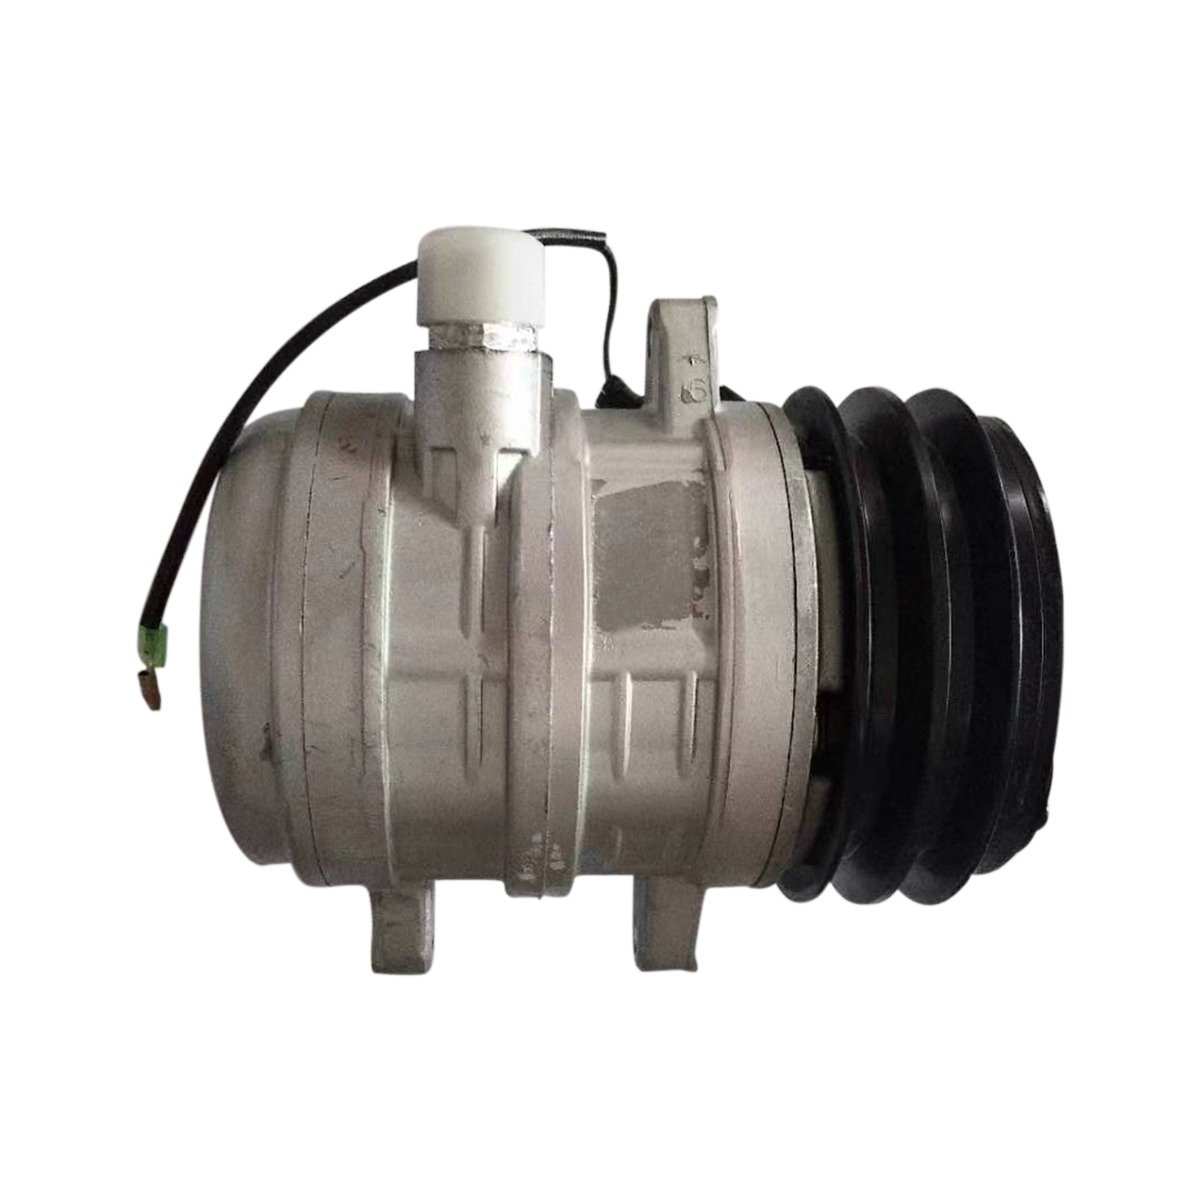 Air Conditioning Compressor 6681716 Compatible with Bobcat Excavator 331 331E 335 337 341